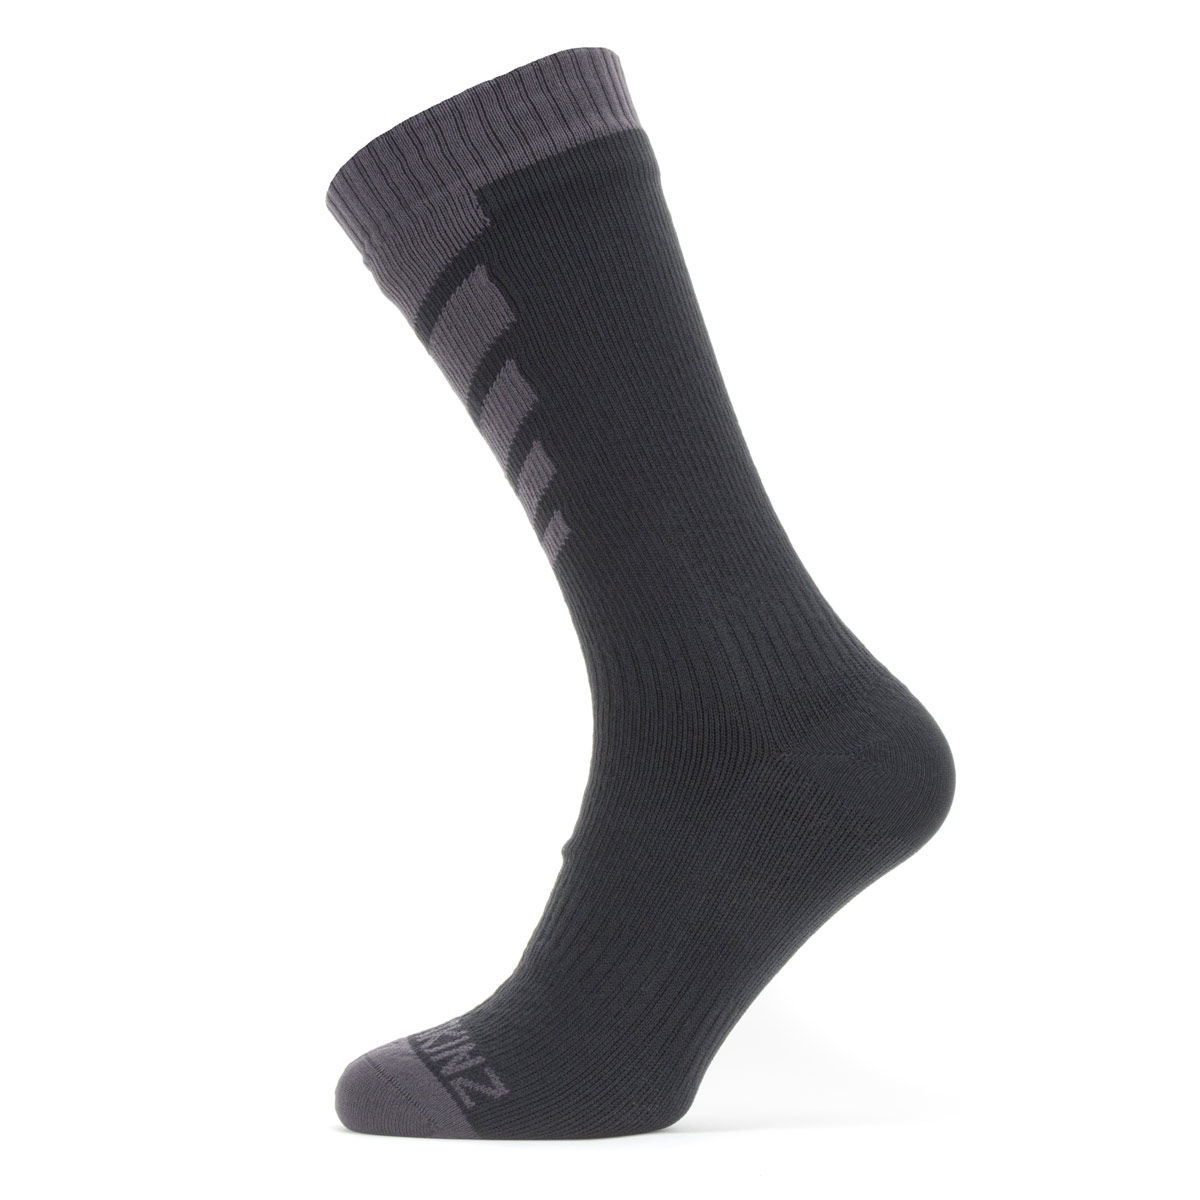 SealSkinz Waterproof Warm Weather Mid Length Socks